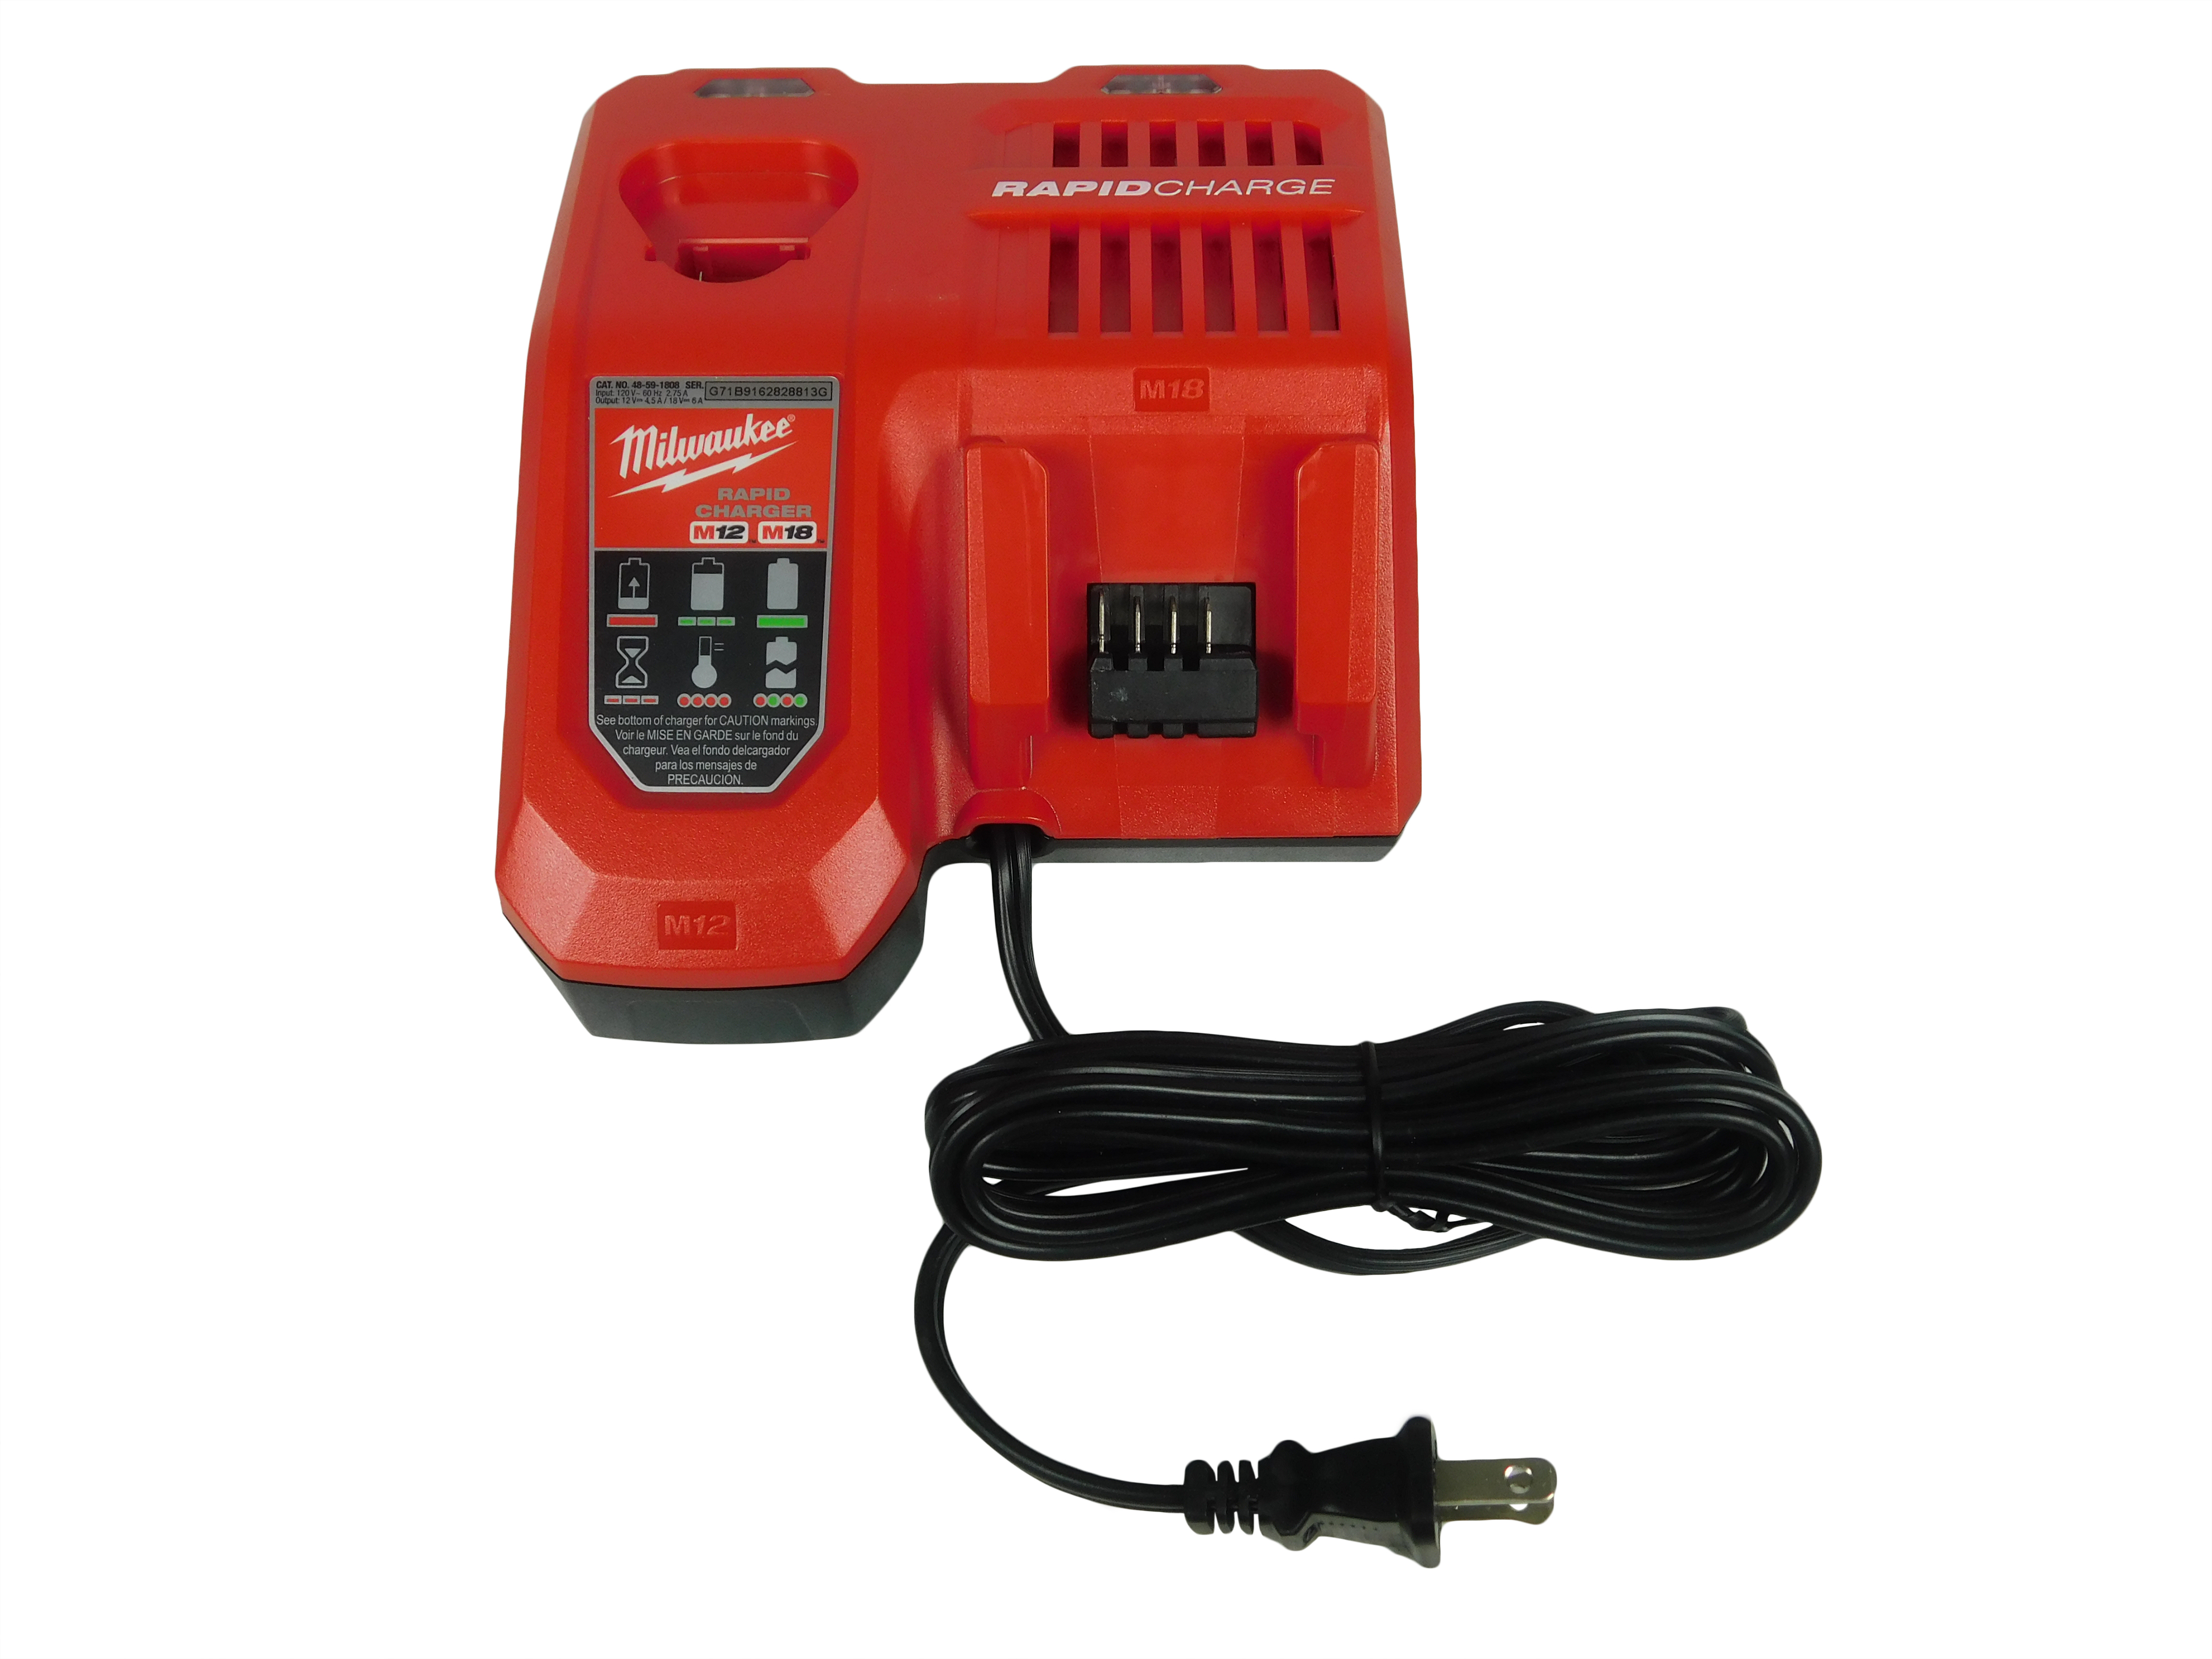 Milwaukee-48-59-1808-M18-M12-Lithium-Ion-Battery-Rapid-Charger-image-1